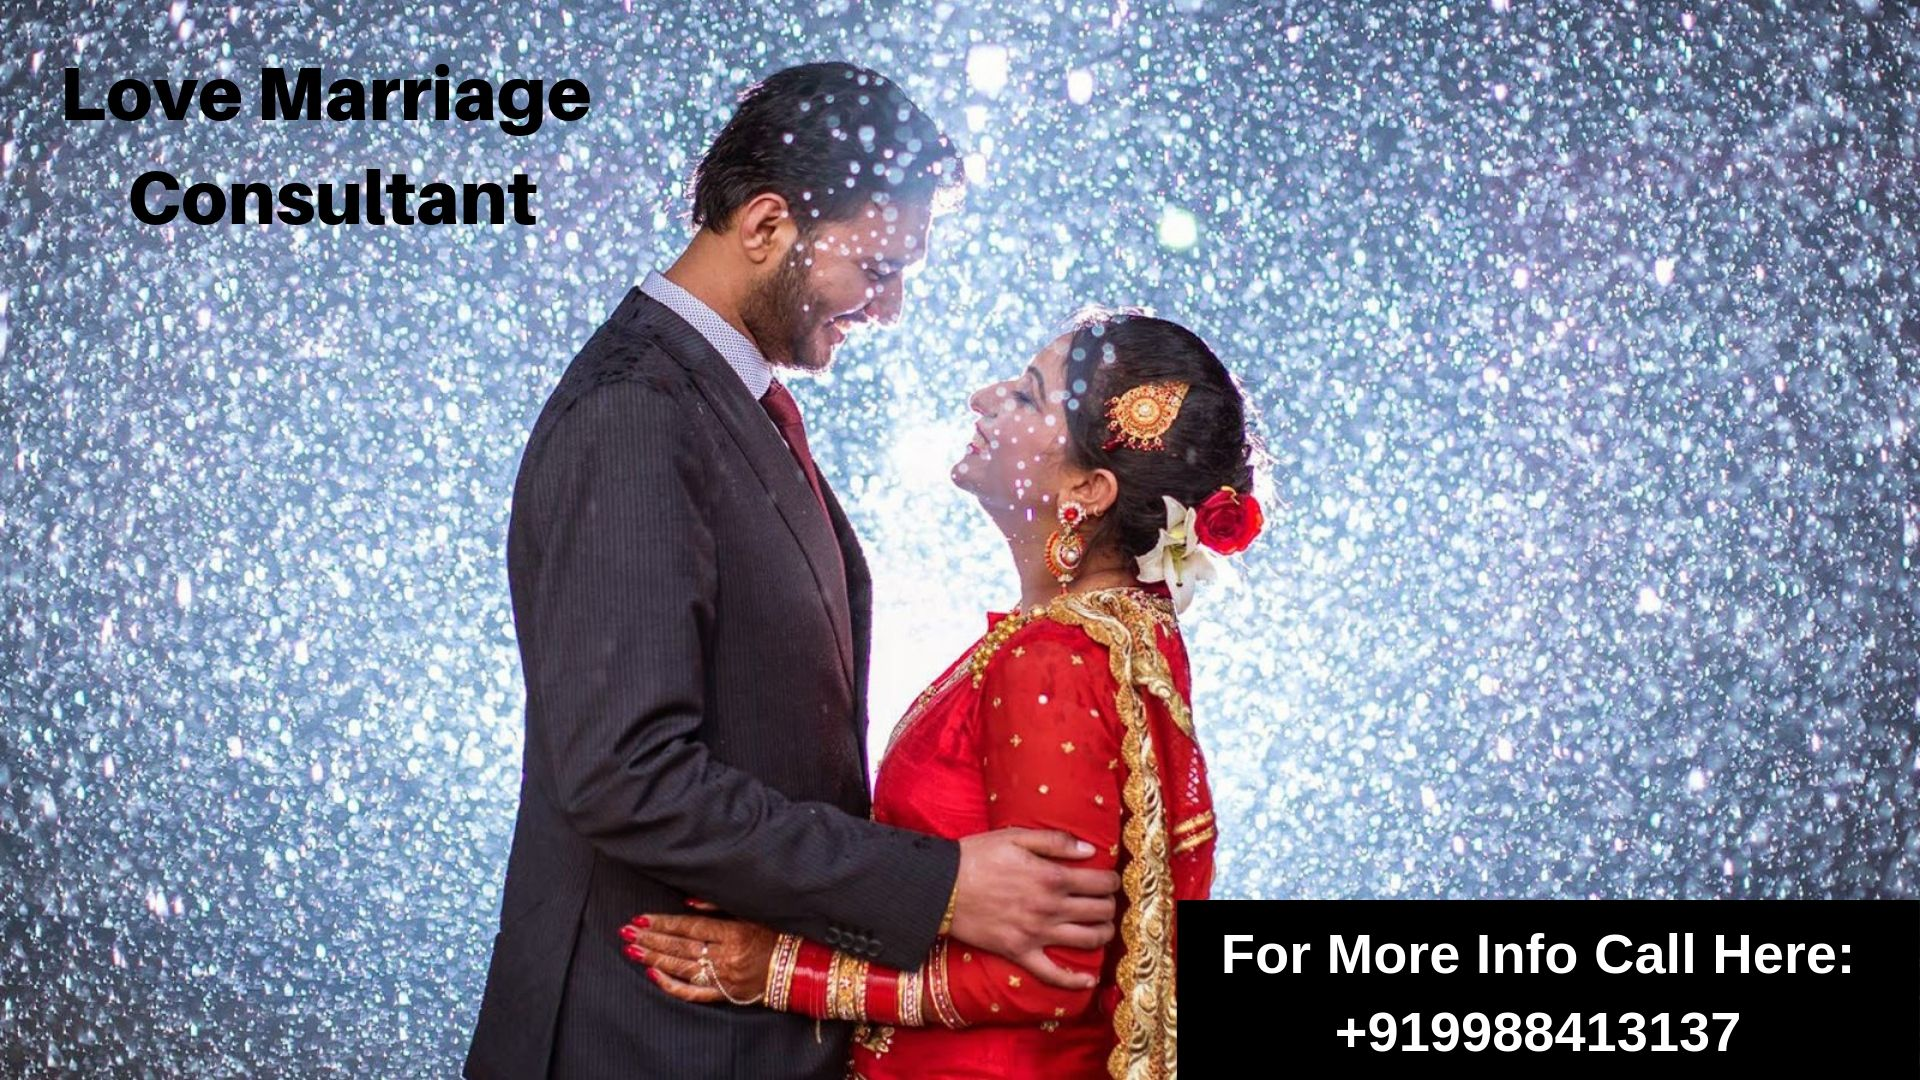 Pin By Love Marriage Consultant On Love Marriage Consultant In Chandigarh Romantic Couple Images Wedding Couples Wedding Ceremony Pictures